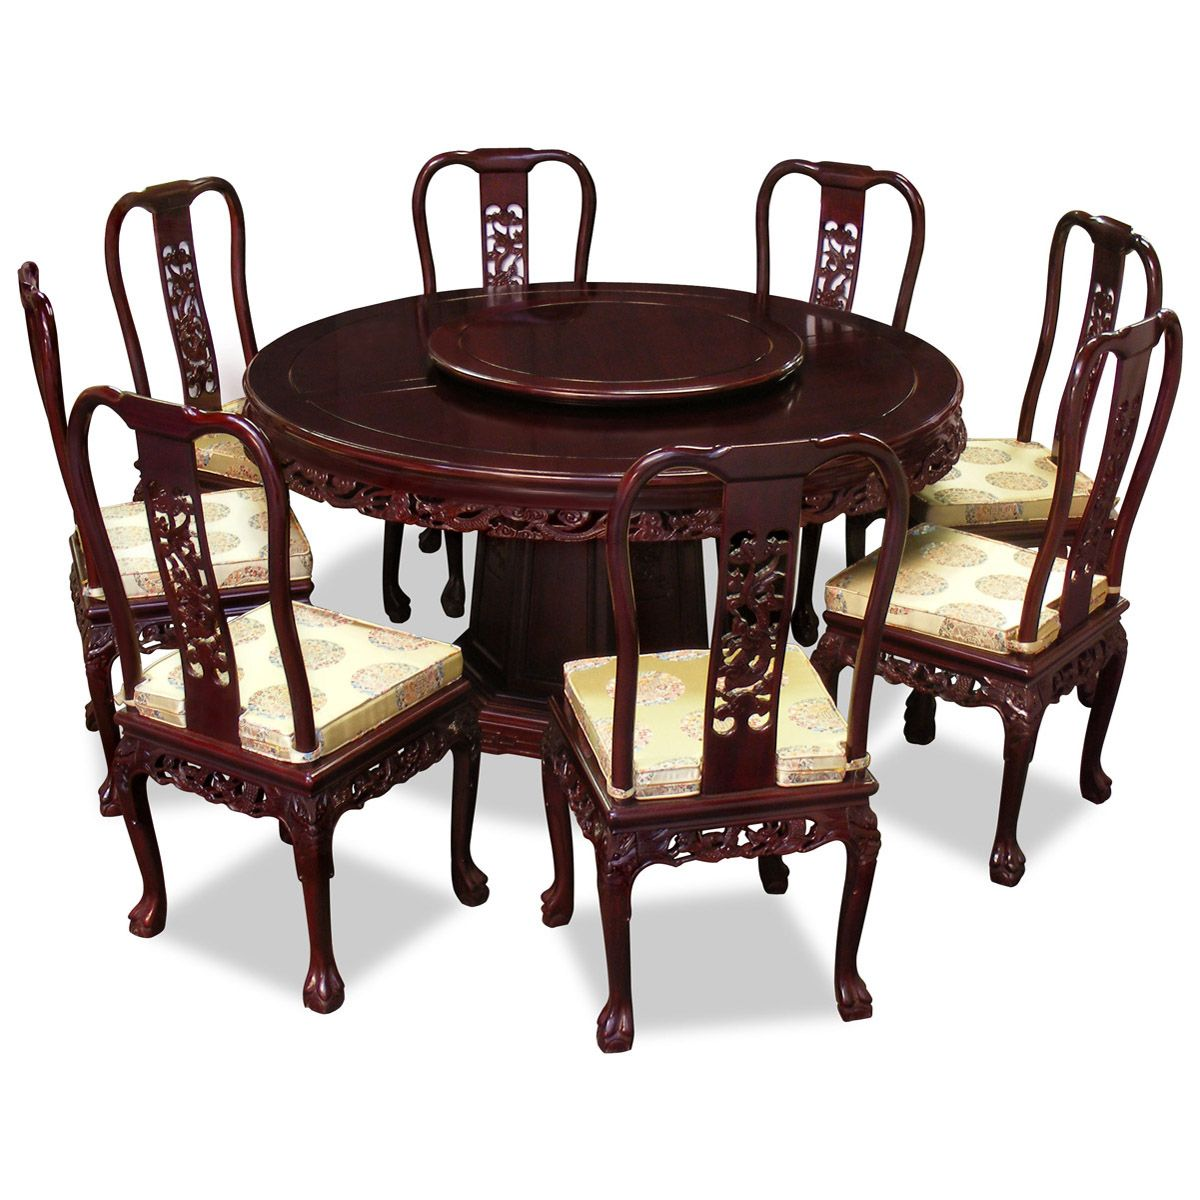 60in Rosewood Imperial Dragon Design Round Dining Table With 8 Chairs Design